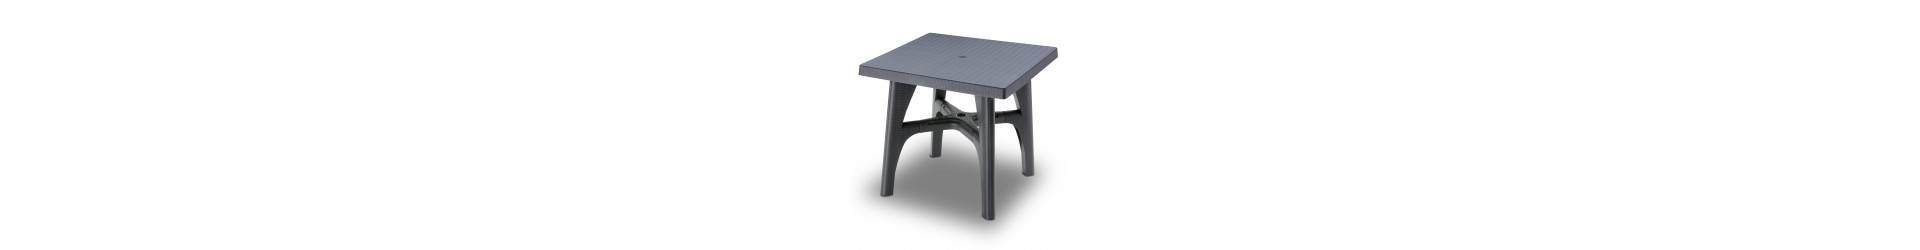 Garden side tables, tables for garden and outdoor